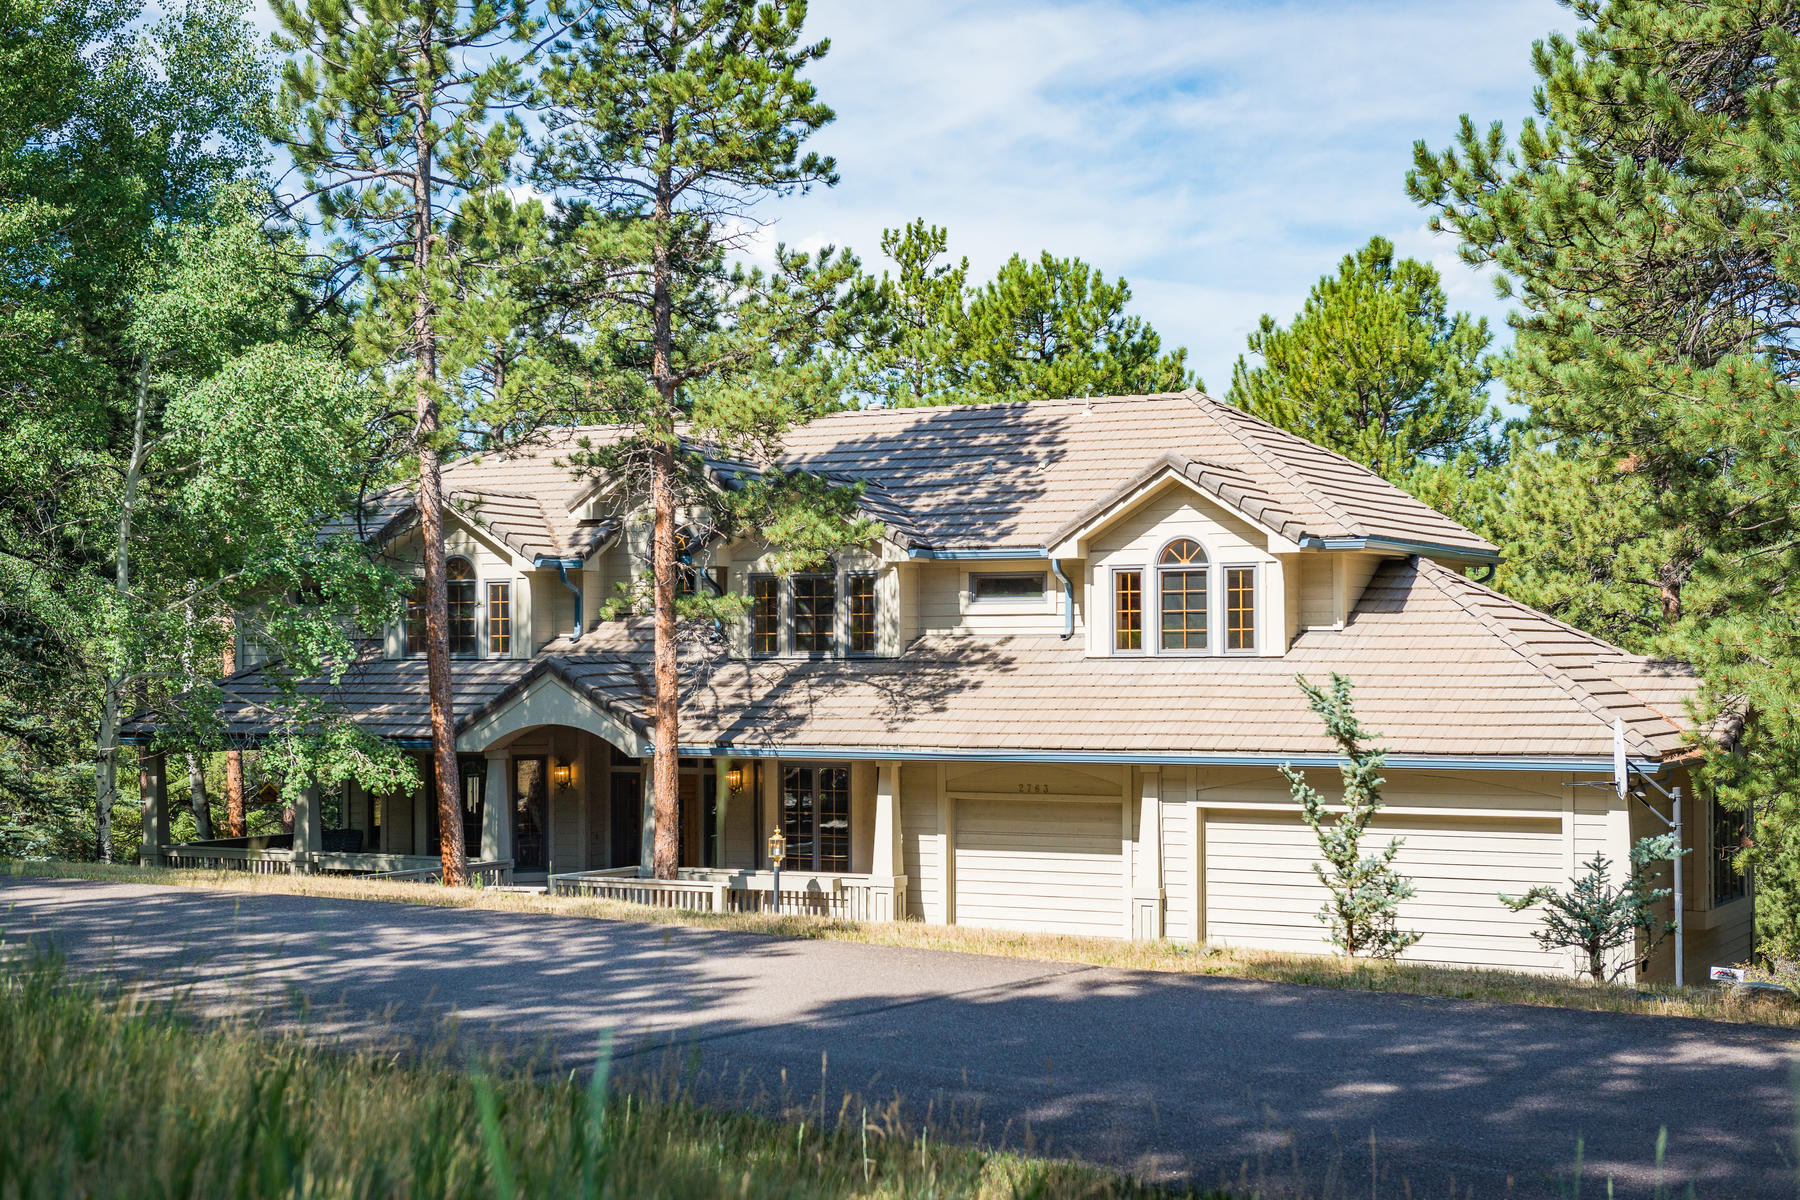 Single Family Home for Active at Serenity in the Ridge 2763 Cortina Lane Evergreen, Colorado 80439 United States